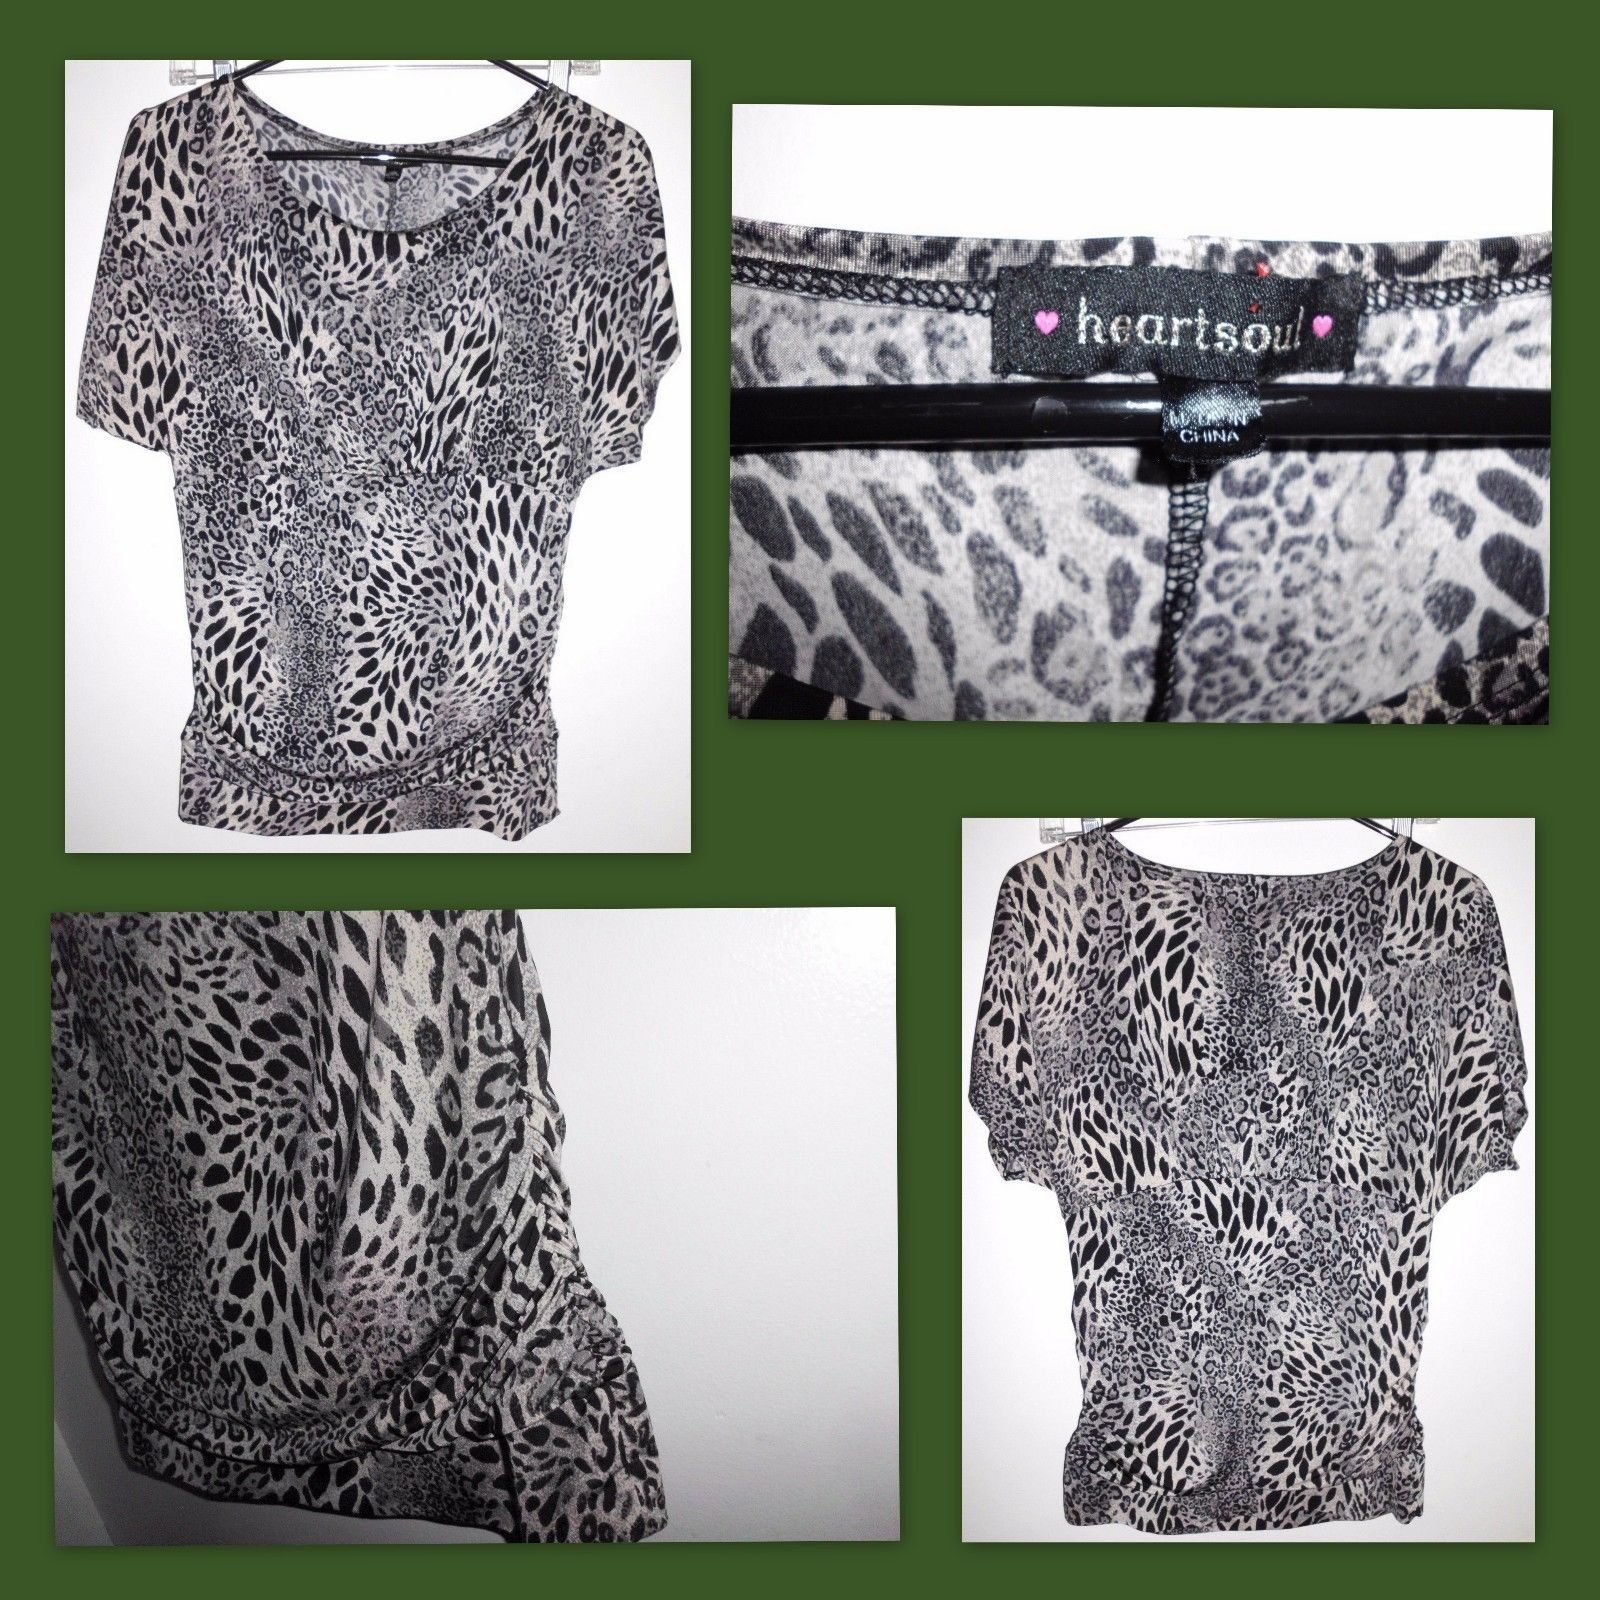 "Primary image for HEART SOUL Lined Animal Print Short Sleeve Shirt 33"" Bust Women's EUC"